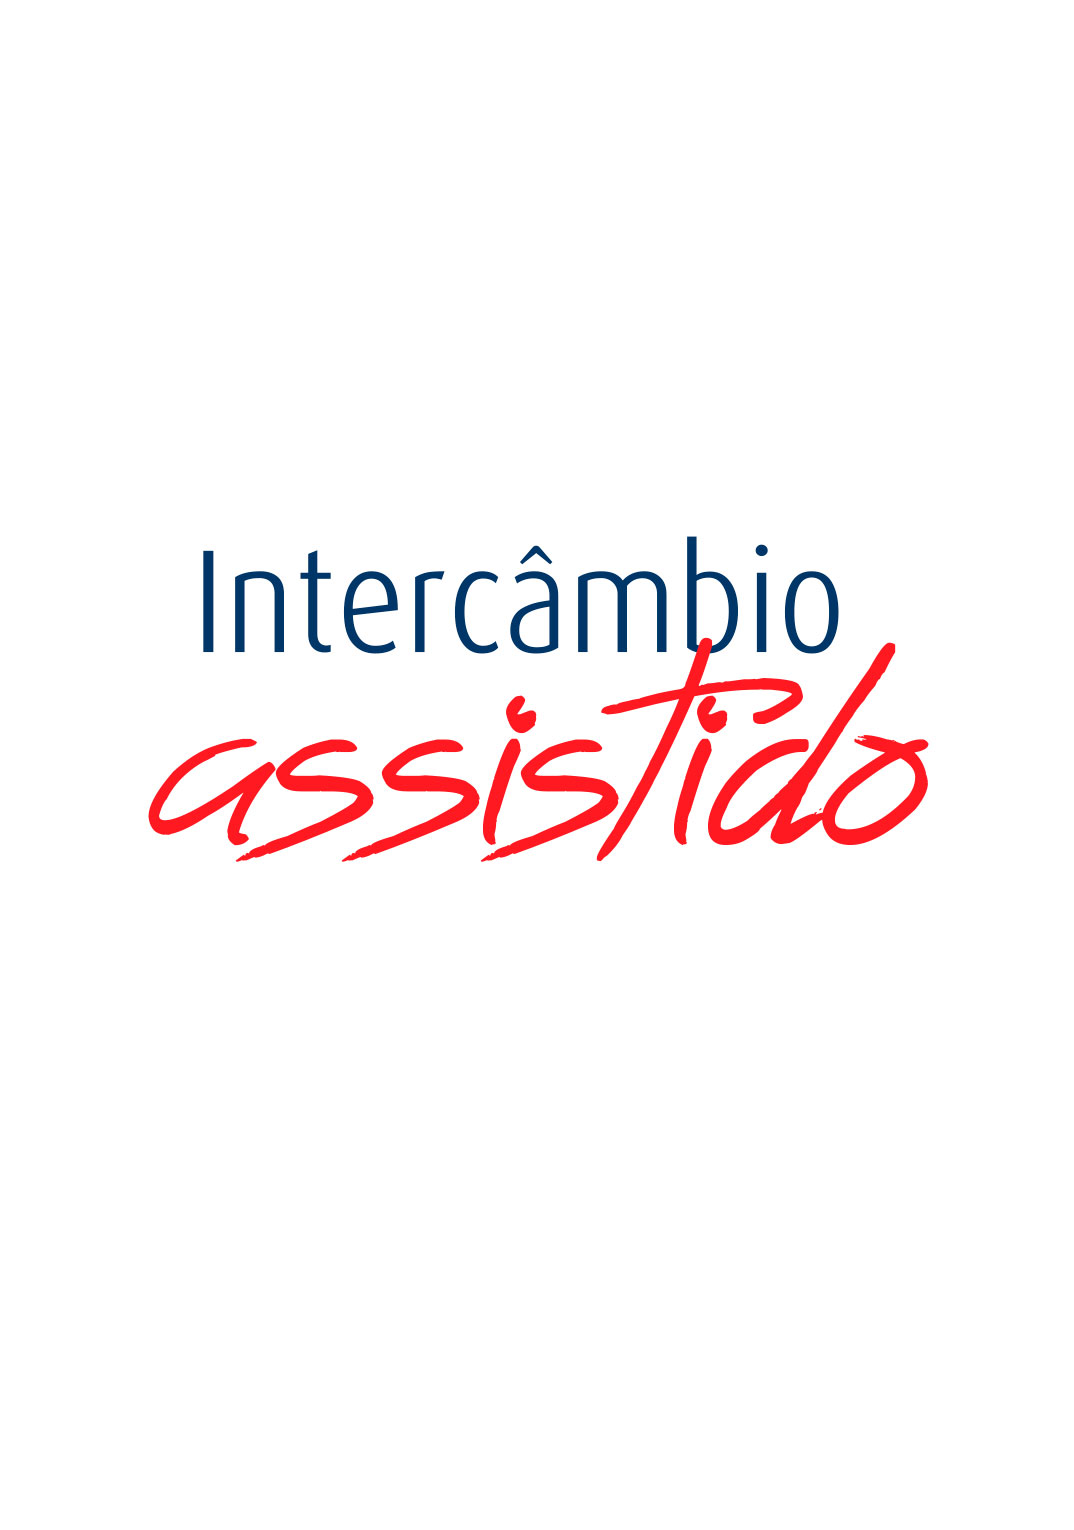 intercambio-assistido-logo